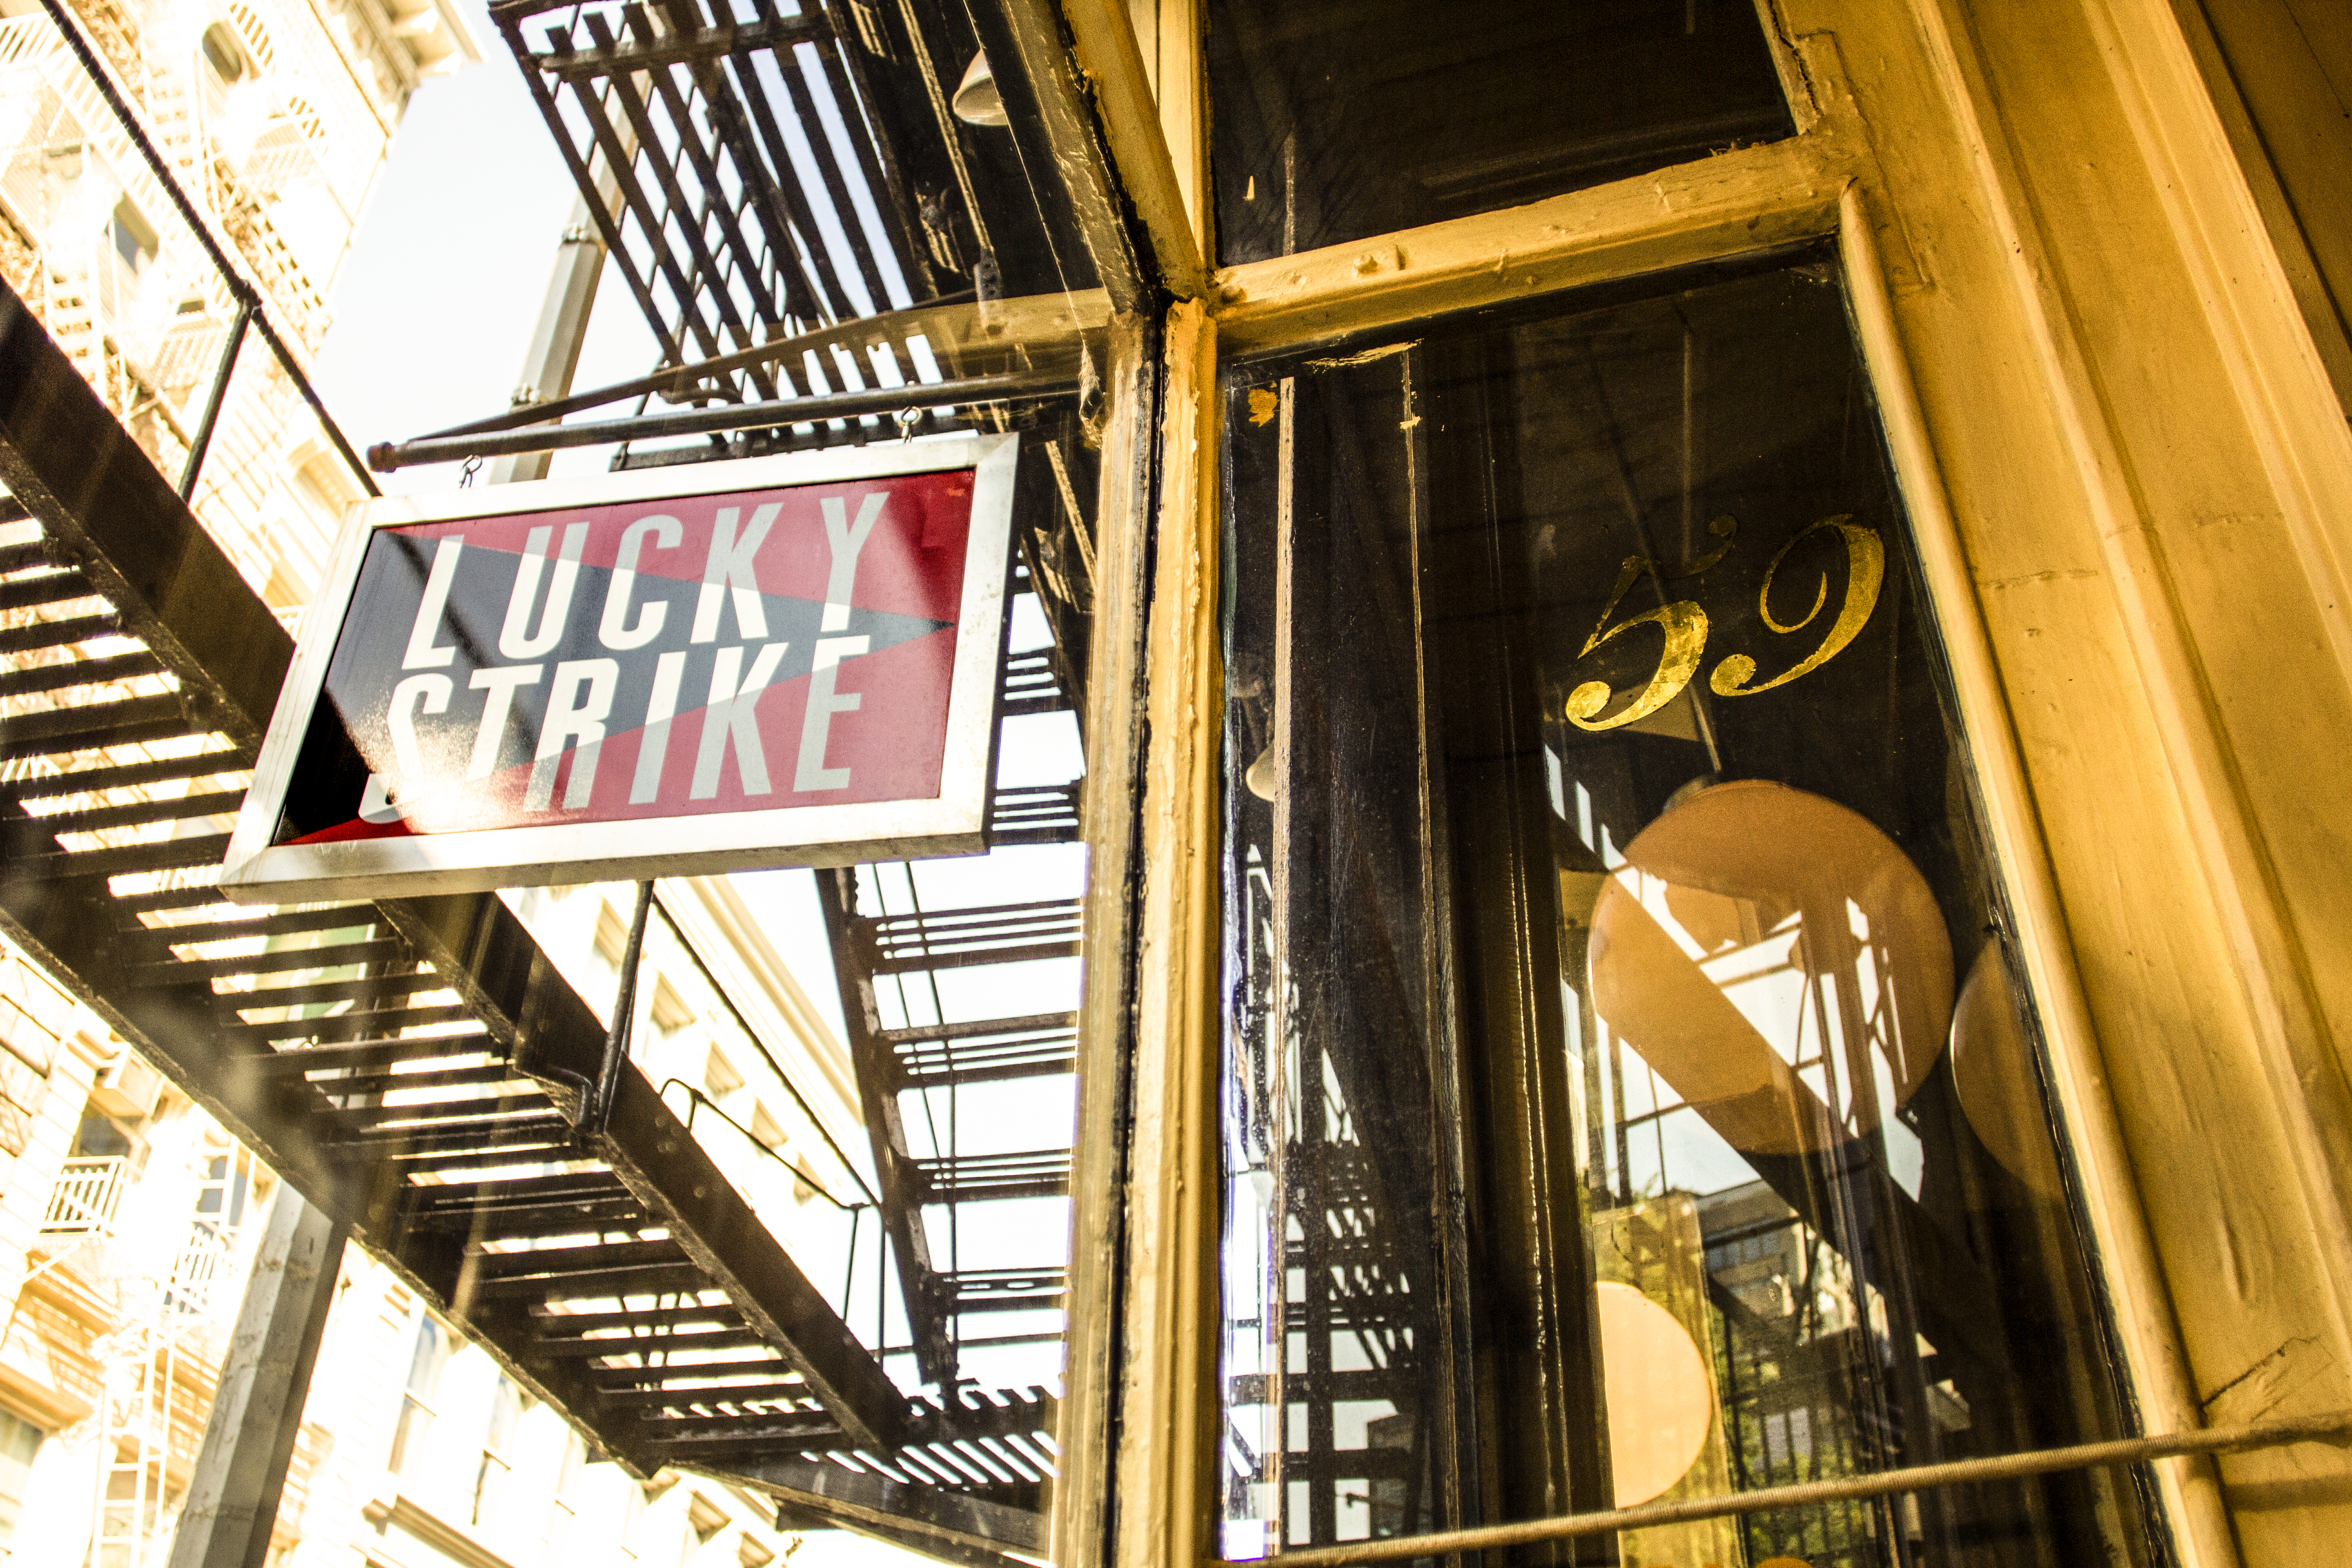 The entrance and sign to a bar called Lucky Strike in SoHo, Manhattan